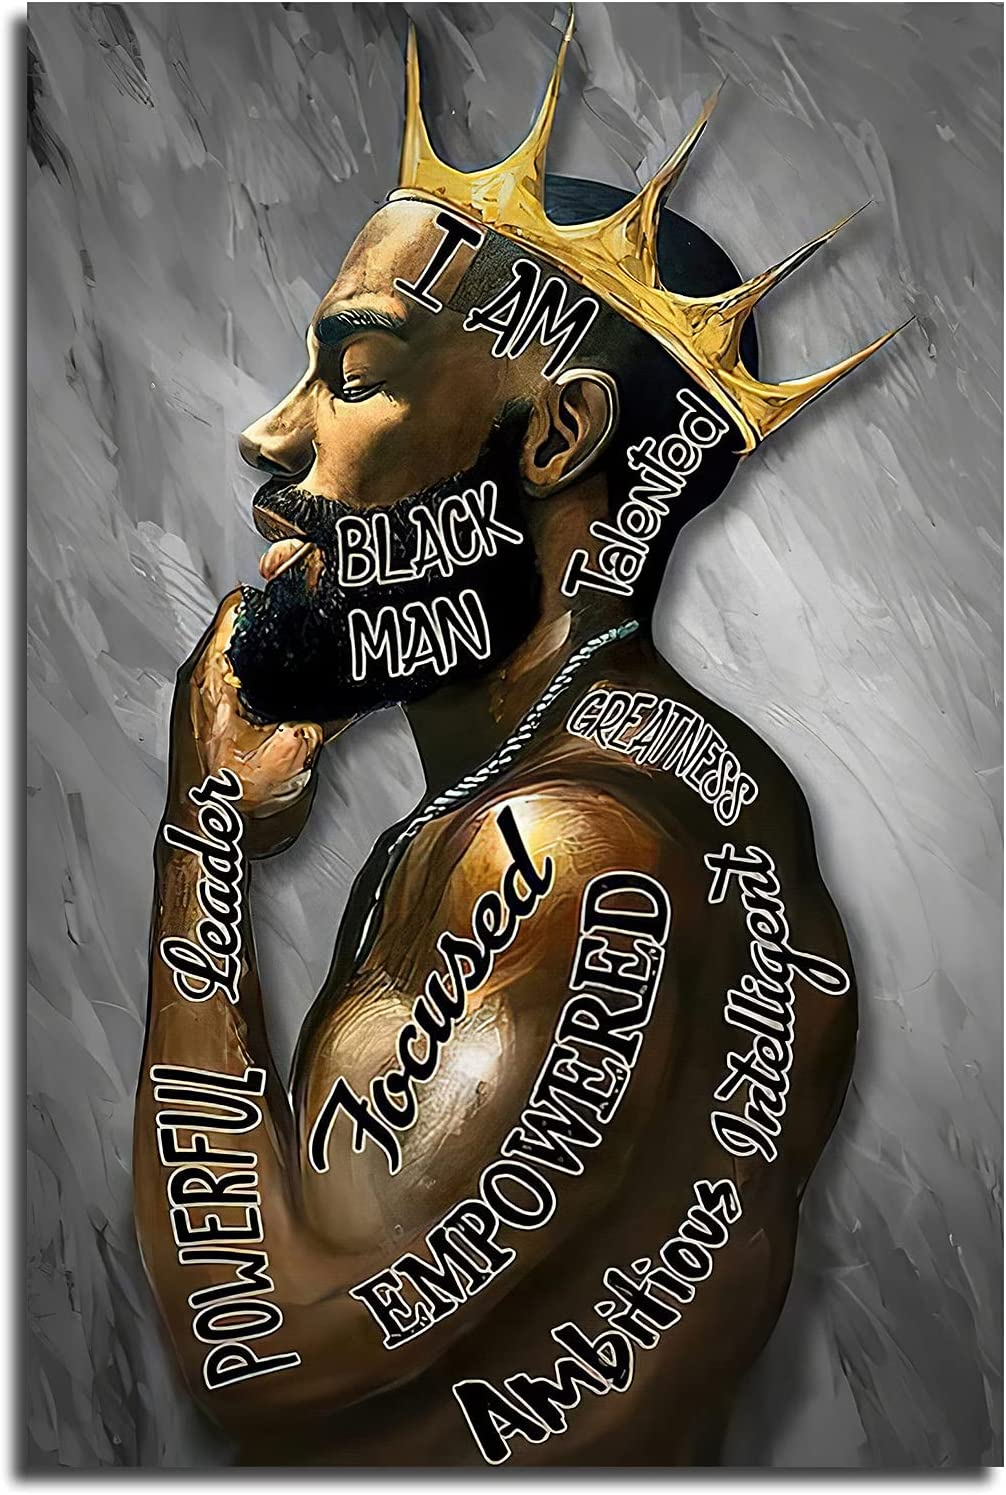 Black Men African American Men Portrait Wall Art Black Men I Am Enough Art Afro King Poster Abstract Contemporary Canvas Prints Painting Home Decor For Bedroom Living Room 12X16 Inch No Frame